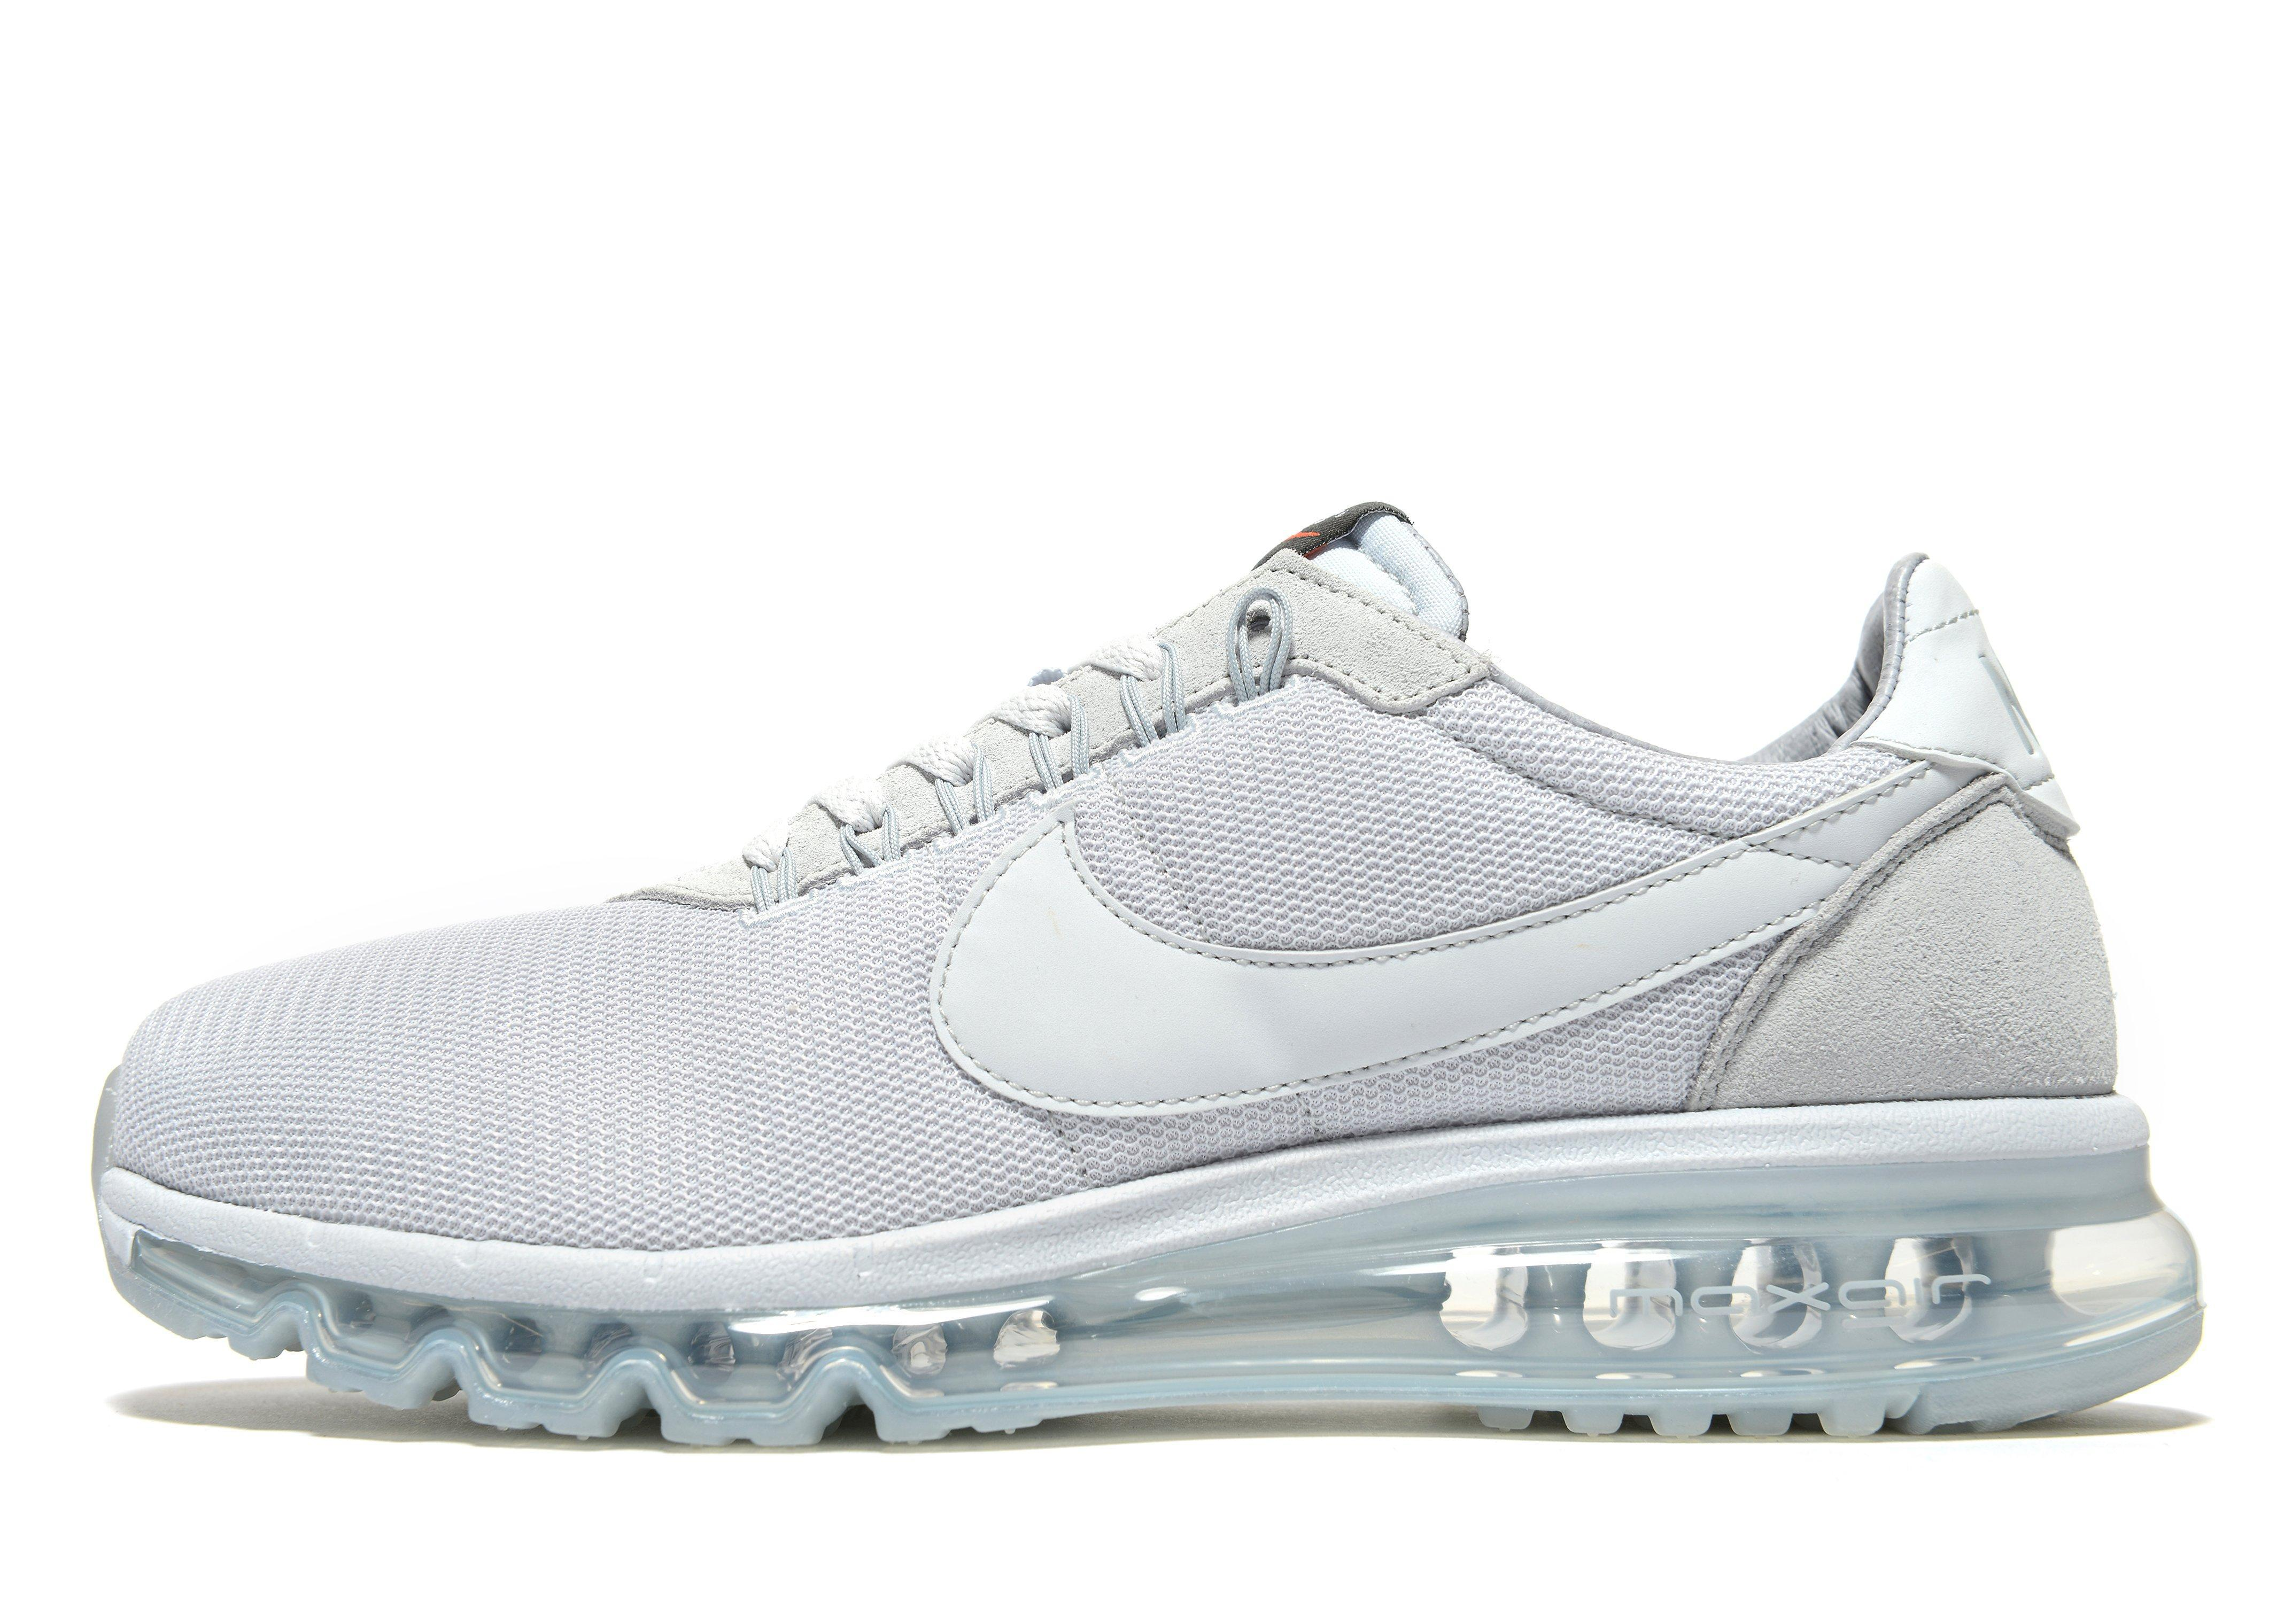 2f3aedf5ee Gallery. Previously sold at: JD Sports · Men's Gucci Ace Men's Air Max ...